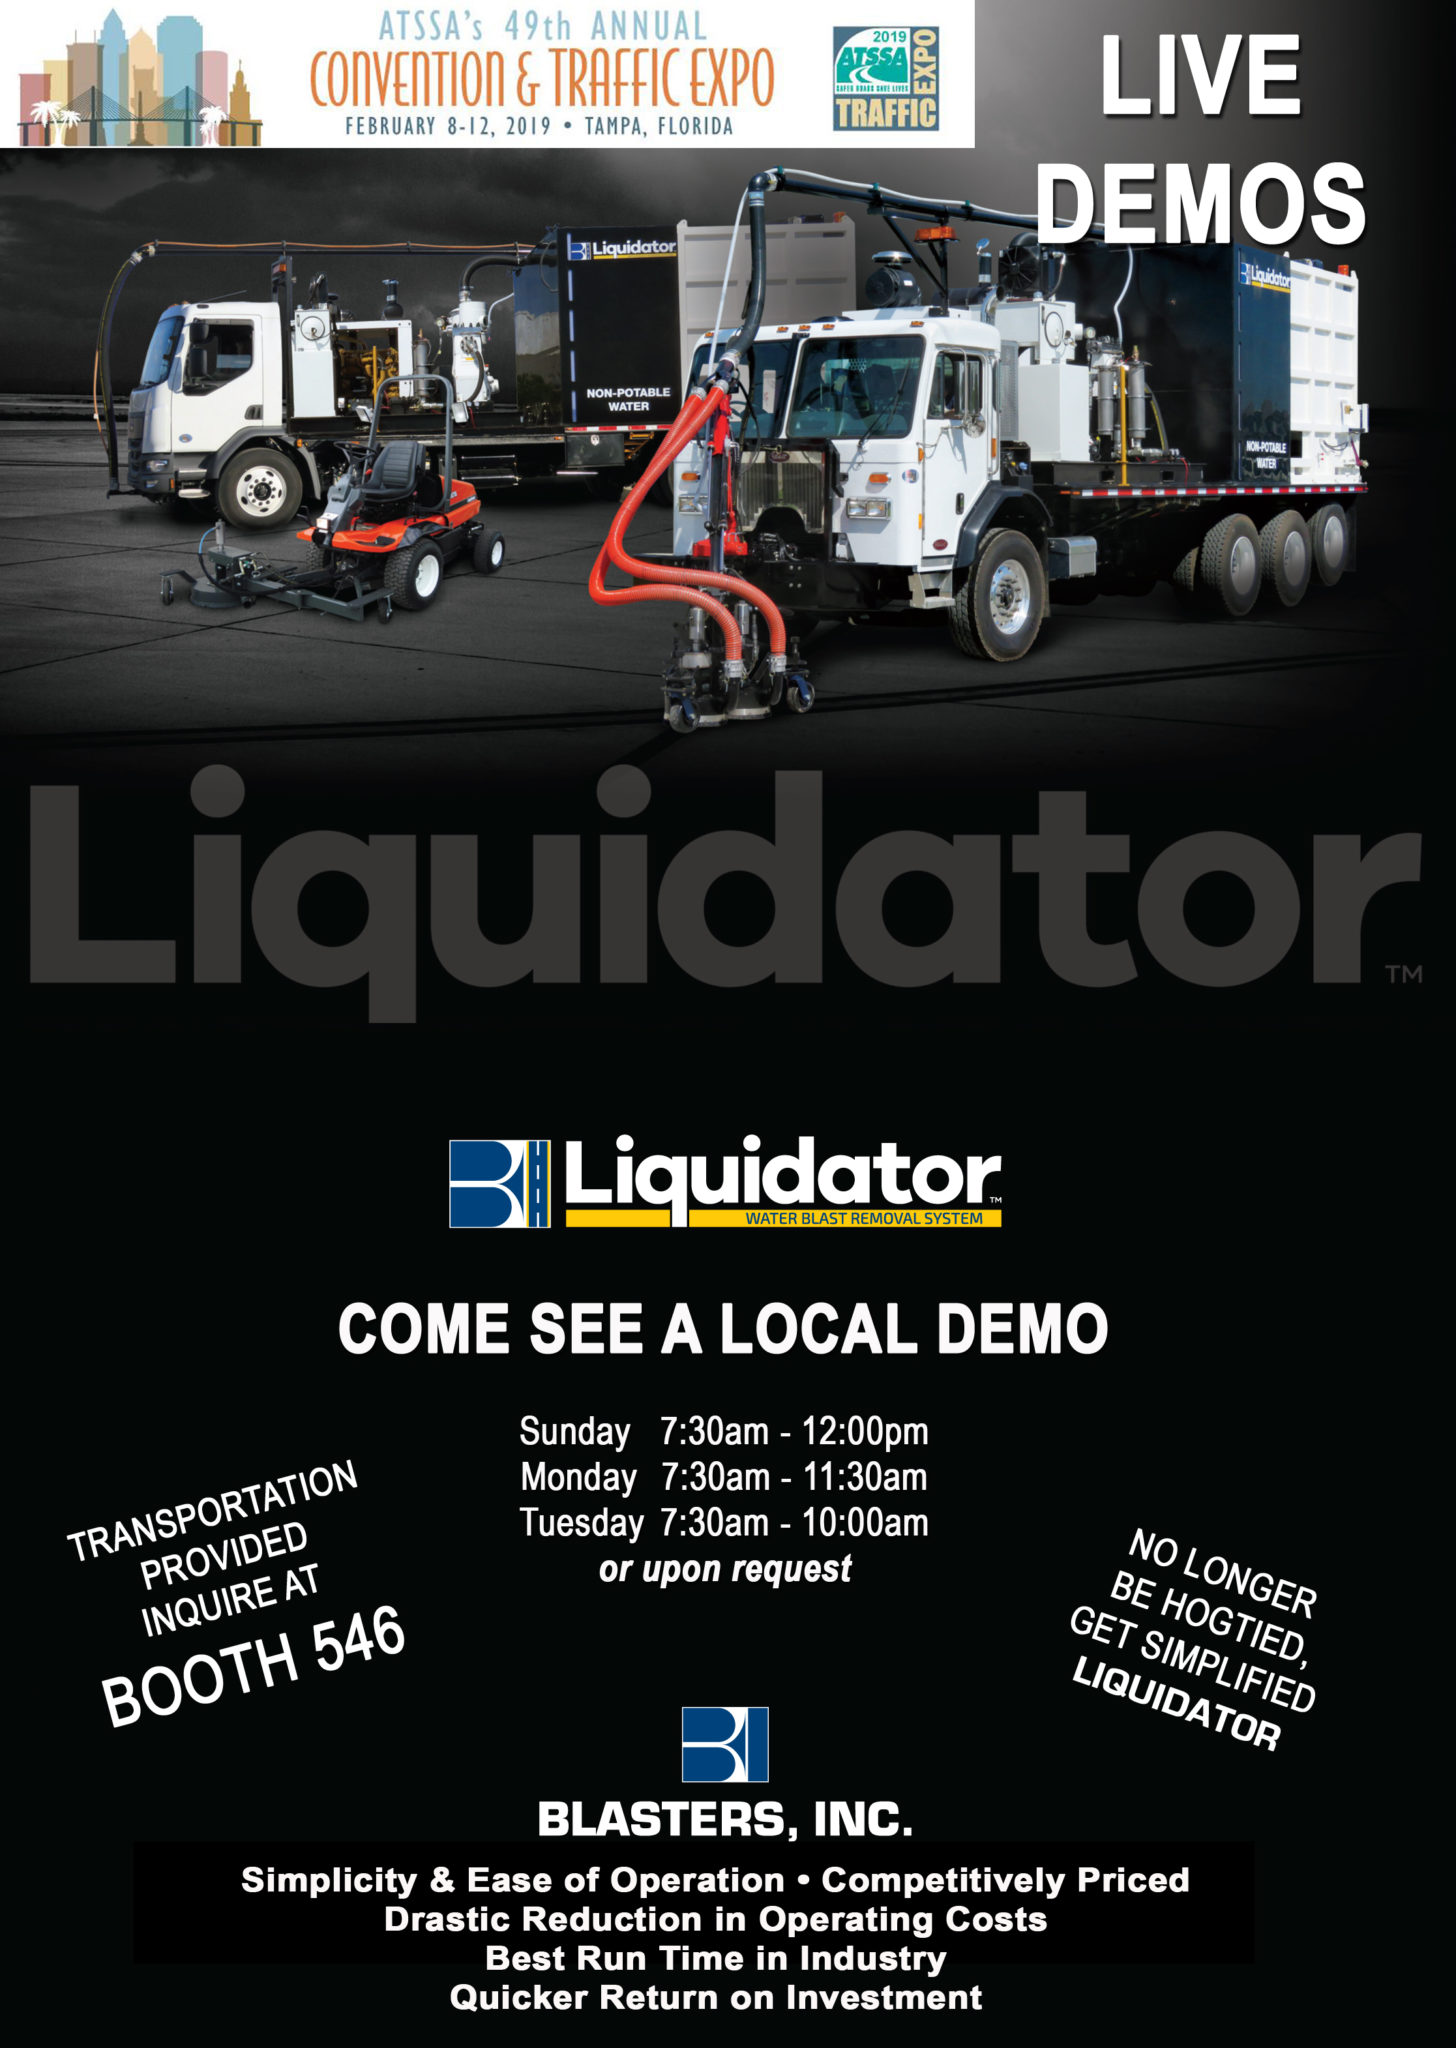 ATSSA is in our backyard this year and we are taking advantage. Live demos are scheduled nearby and transportation will be provided from the convention center. We are offering set times or you can schedule a demo when it's convenient for you! Available upon request and availability. See us in booth 546.